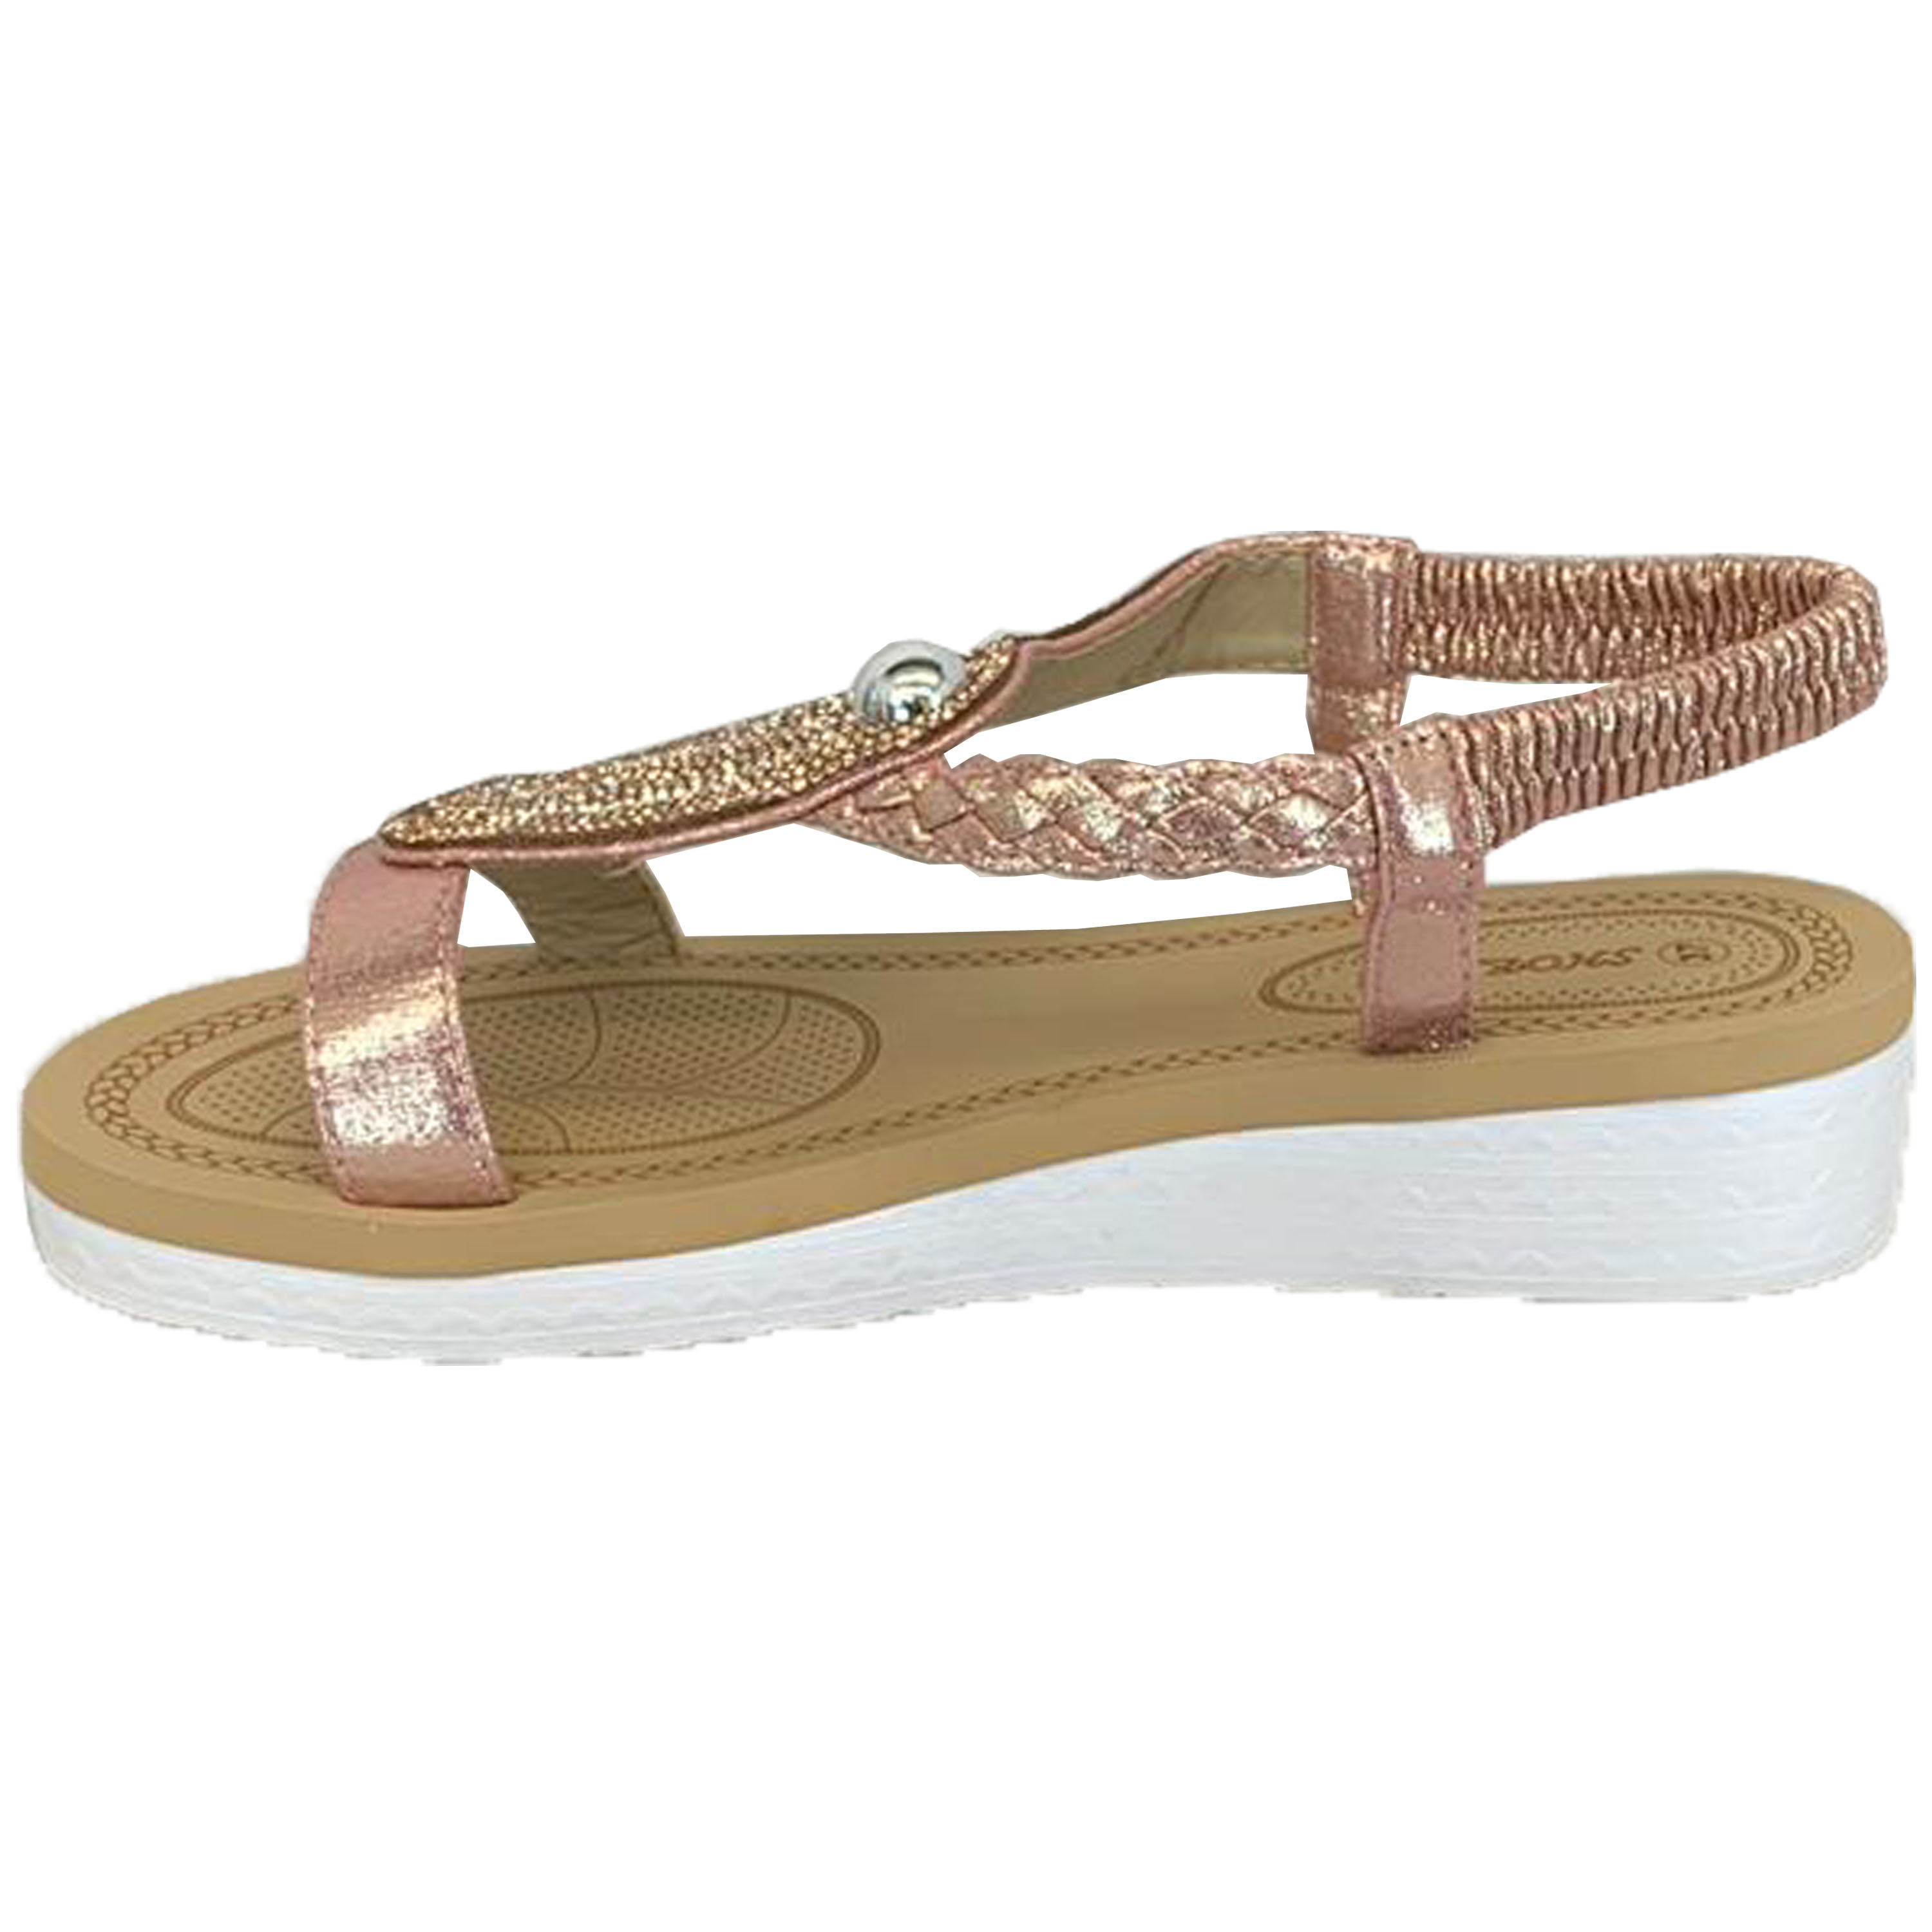 Ladies Sandals Womens Diamante Sling Back Open Toe Shoes Fashion Summer New